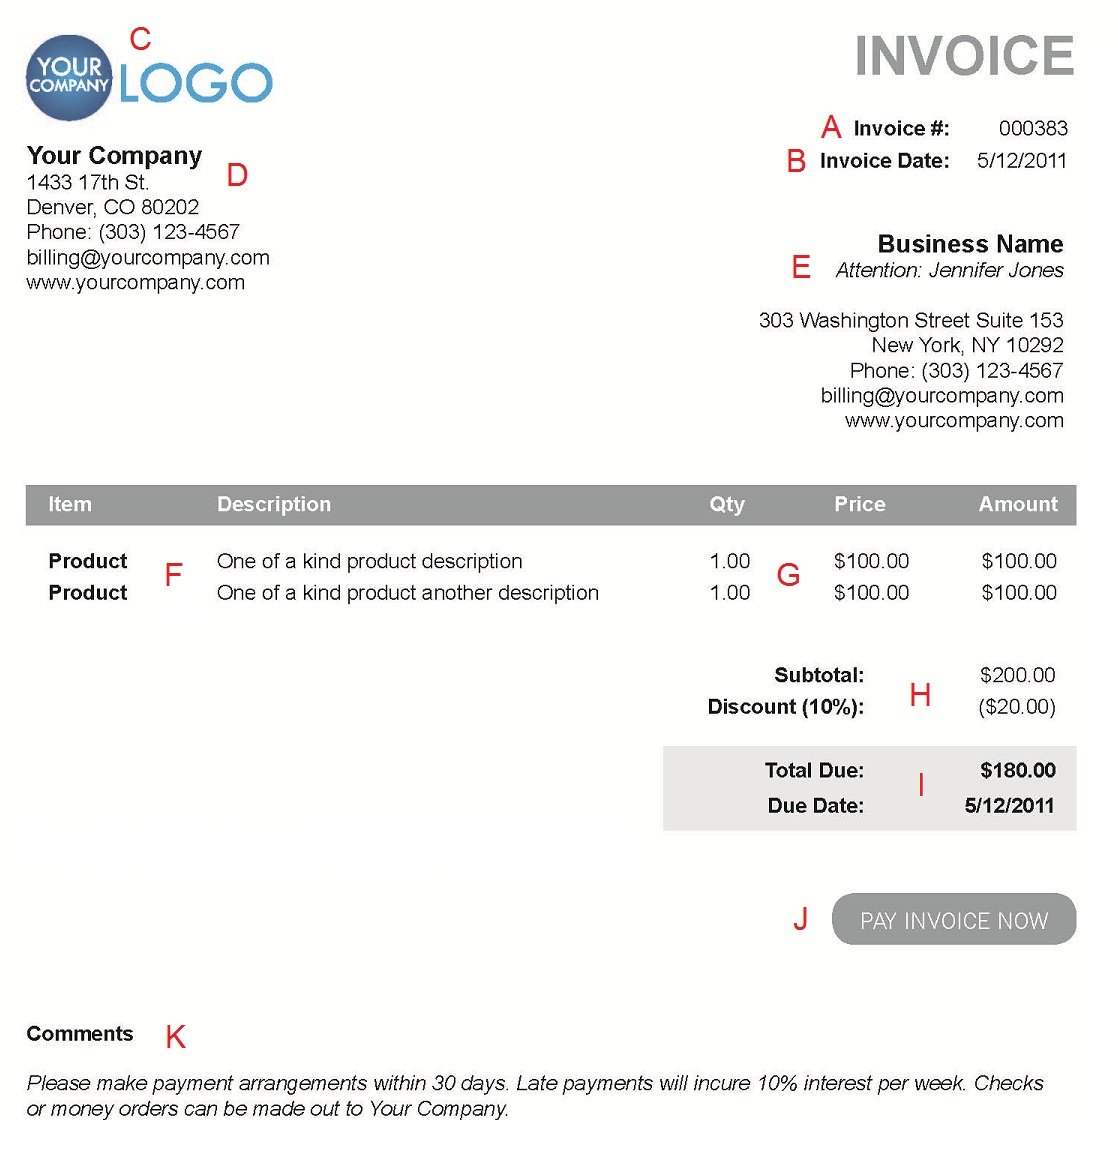 Breakupus  Gorgeous The  Different Sections Of An Electronic Payment Invoice With Magnificent A  With Captivating Florida Toll By Plate Invoice Also Invoice Price New Cars In Addition Invoice Programs For Small Business Free And Invoice Price Vs Sticker Price As Well As Cheap Invoices Additionally Invoice Approval Stamp From Paysimplecom With Breakupus  Magnificent The  Different Sections Of An Electronic Payment Invoice With Captivating A  And Gorgeous Florida Toll By Plate Invoice Also Invoice Price New Cars In Addition Invoice Programs For Small Business Free From Paysimplecom